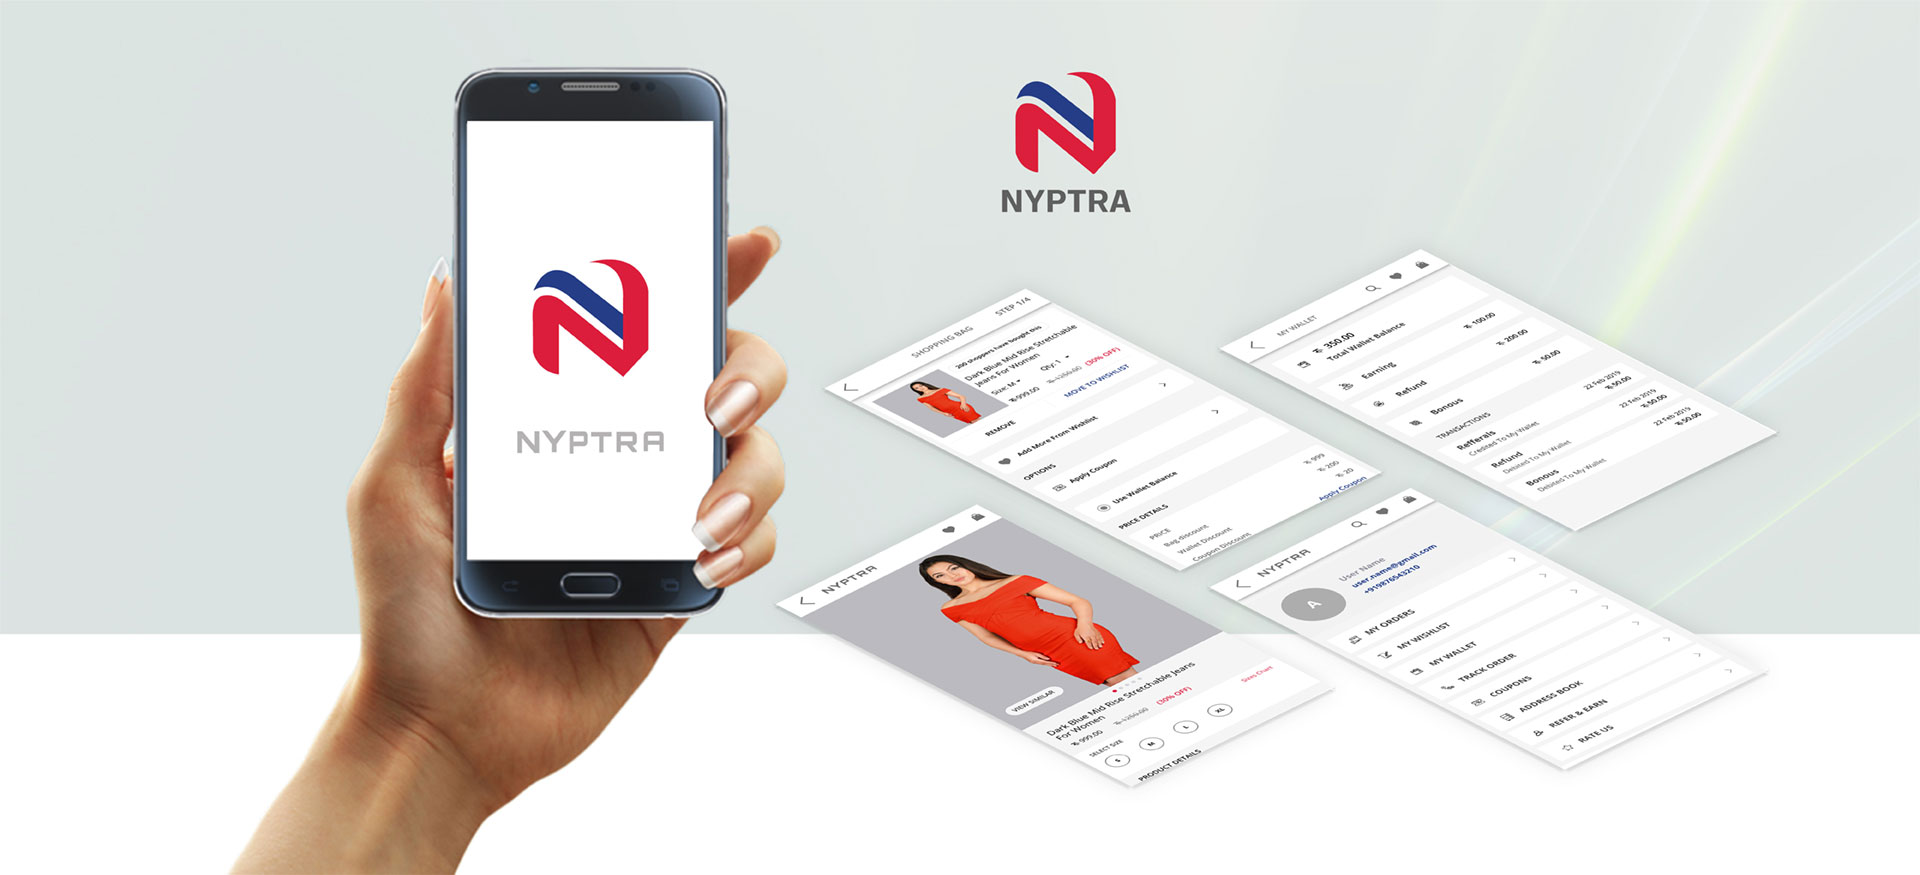 Nyptra screen